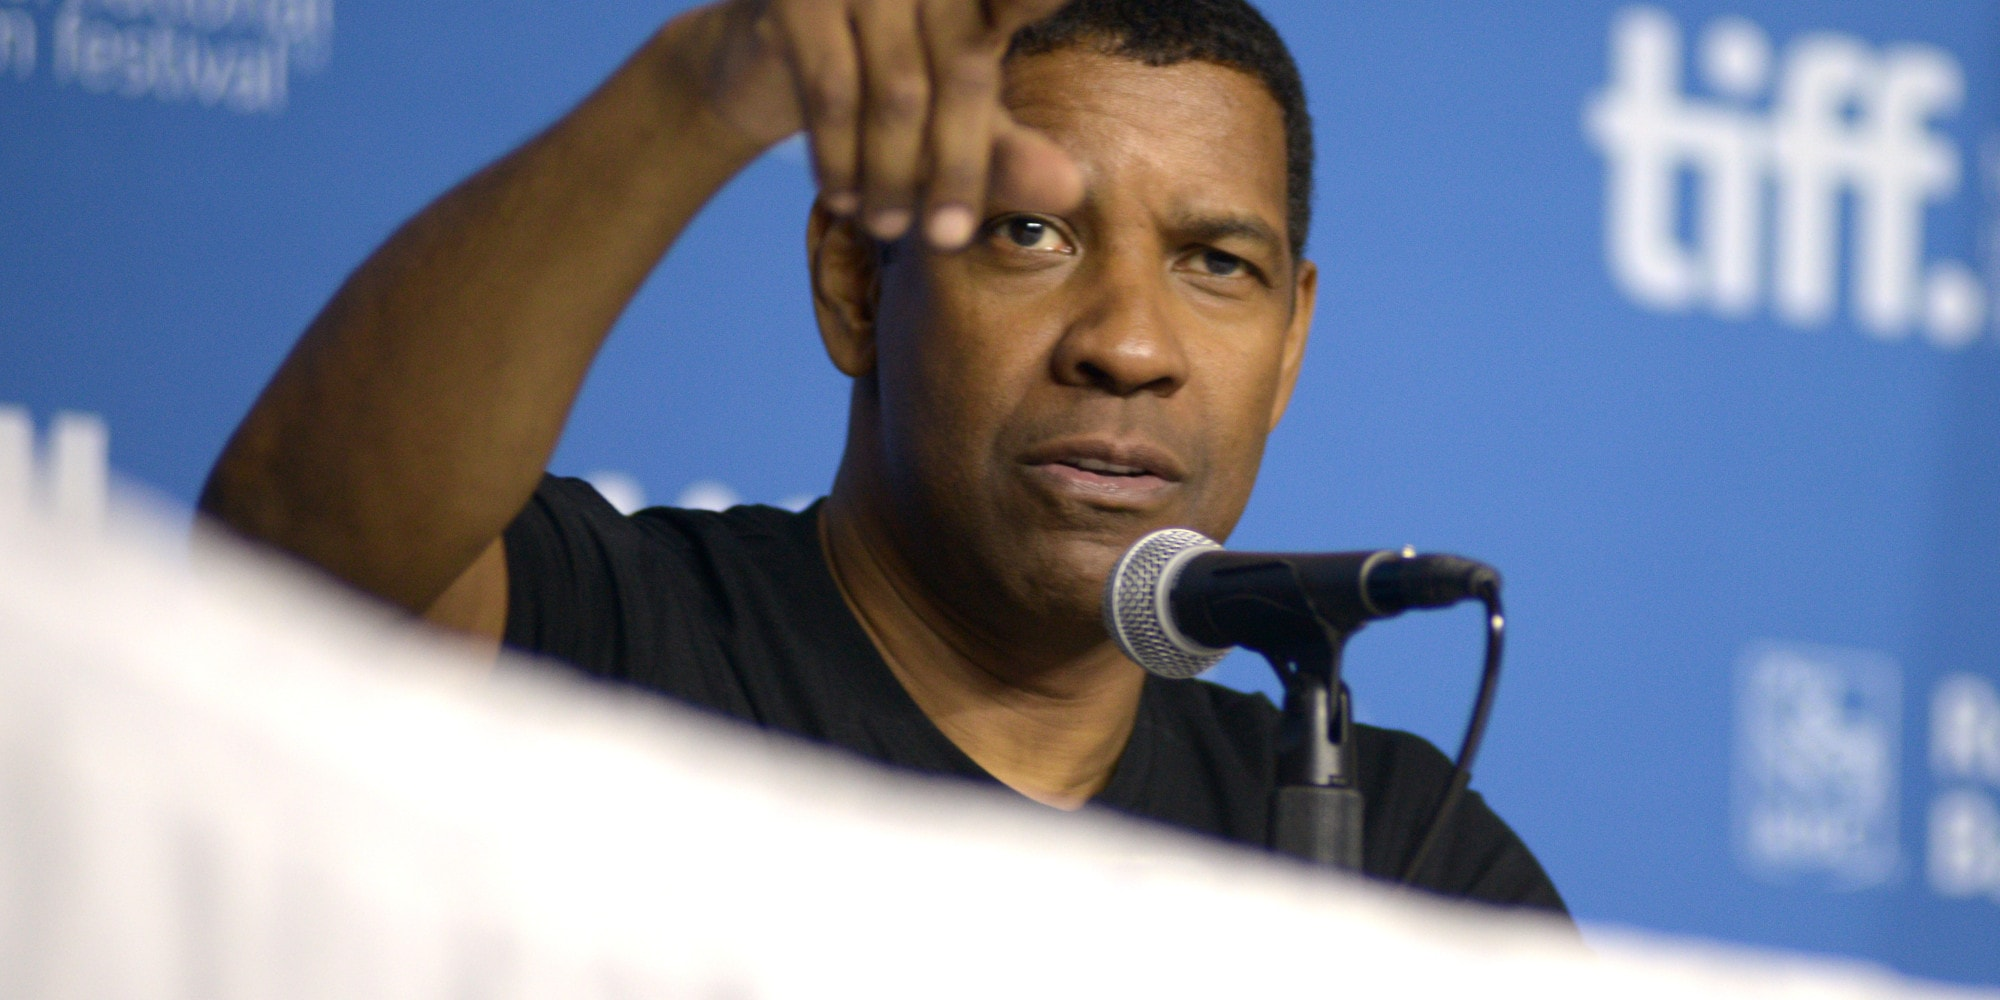 Denzel Washington Wide wallpapers